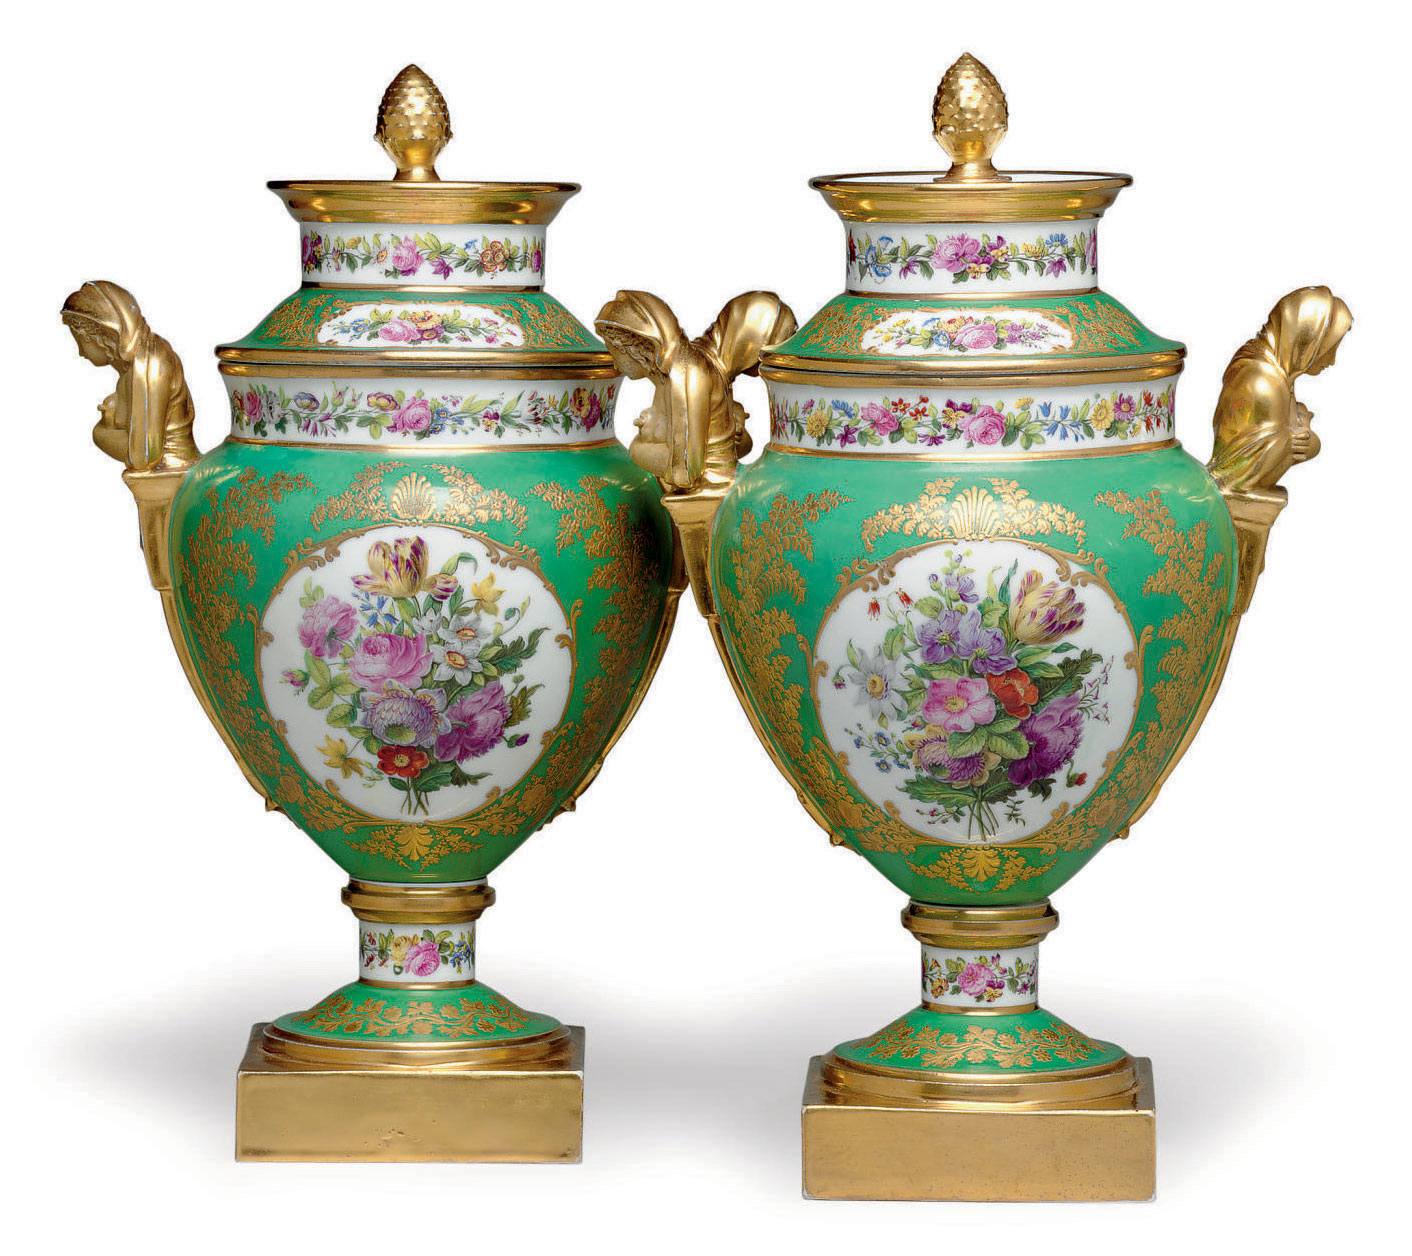 A PAIR OF PARIS PORCELAIN (FEUILLET) GREEN-GROUND ICE-PAILS AND COVERS